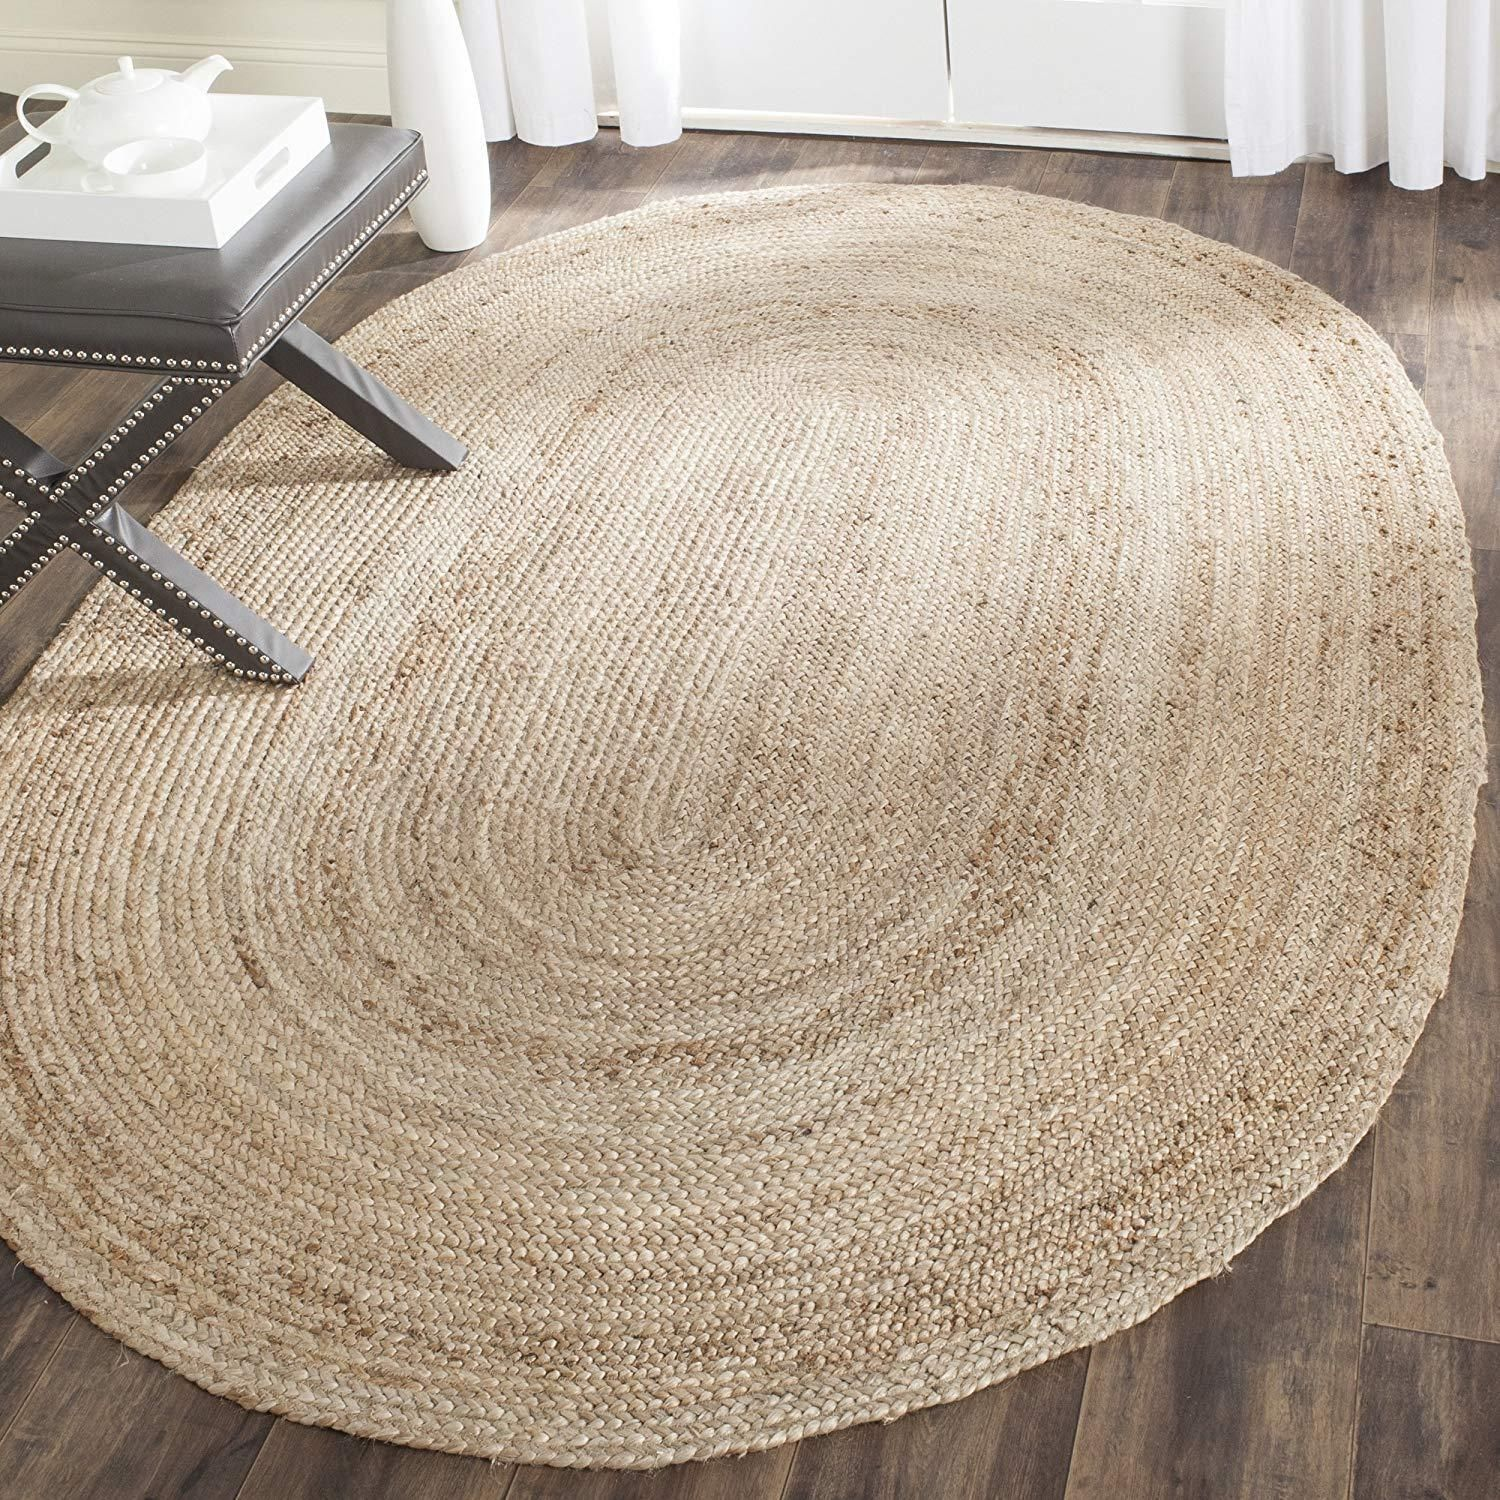 Details About Indian Natural Oval Jute Braided Handmade Home Decoration Carpet Modern Rug In 2020 Natural Jute Rug Jute Area Rugs Jute Floor Rugs